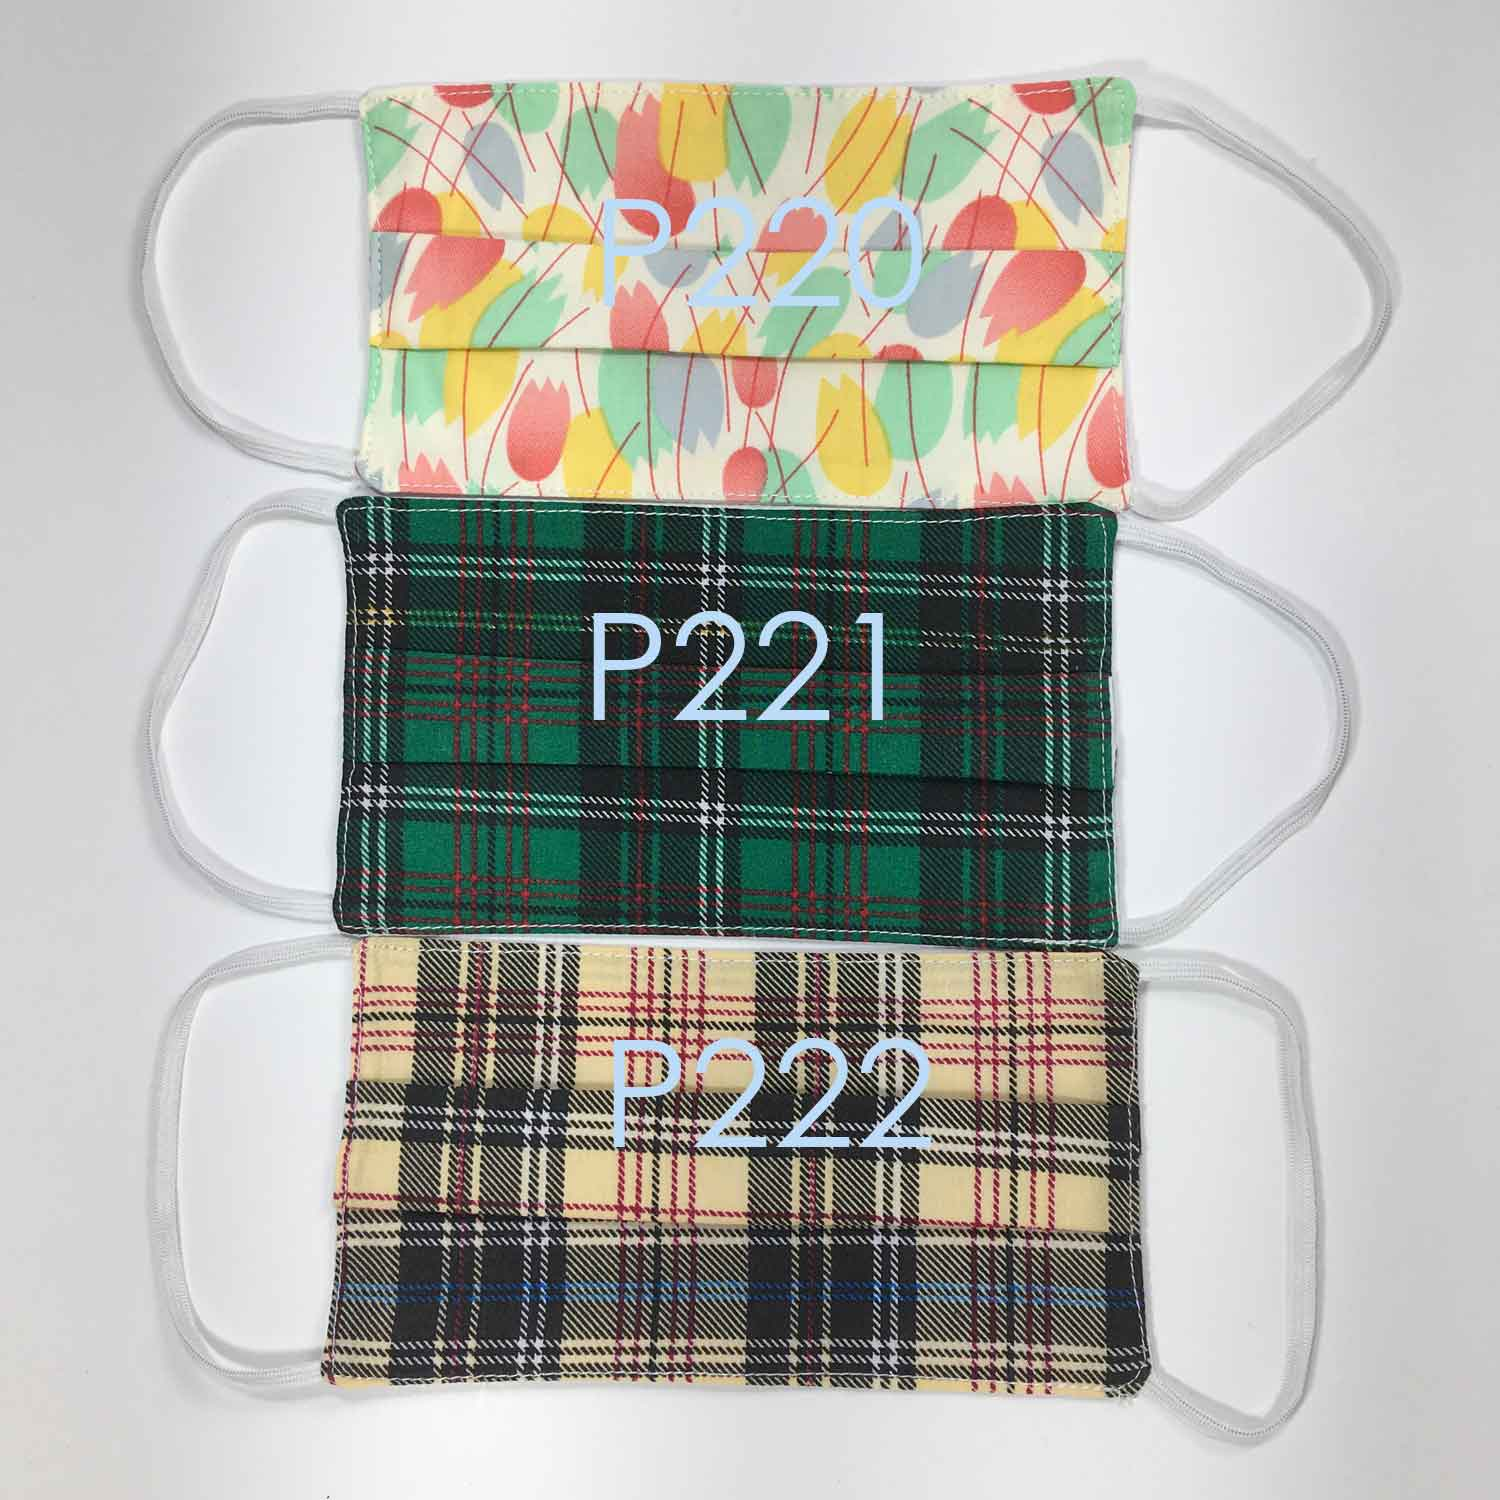 Handmade MEDIUM Cotton Face Masks - Pleated - P220-P222